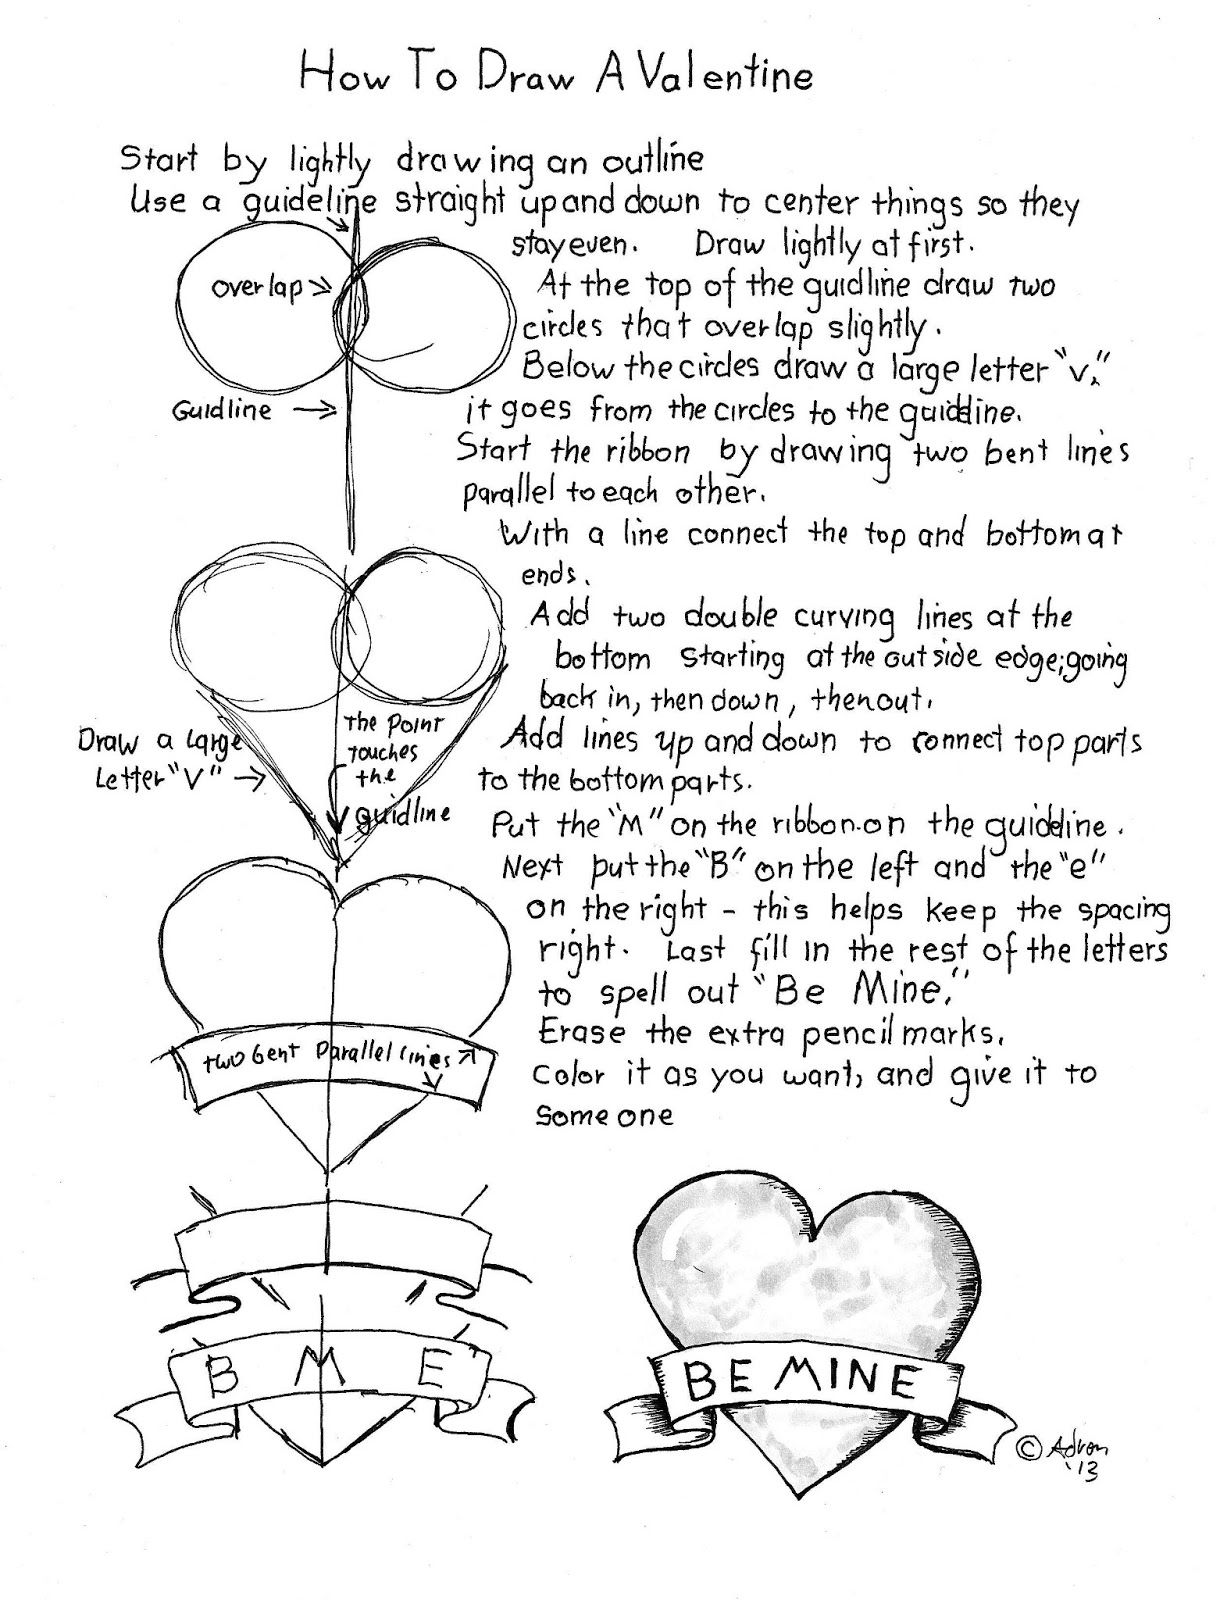 How To Draw A Valentine Worksheet Tips And Suggestions At